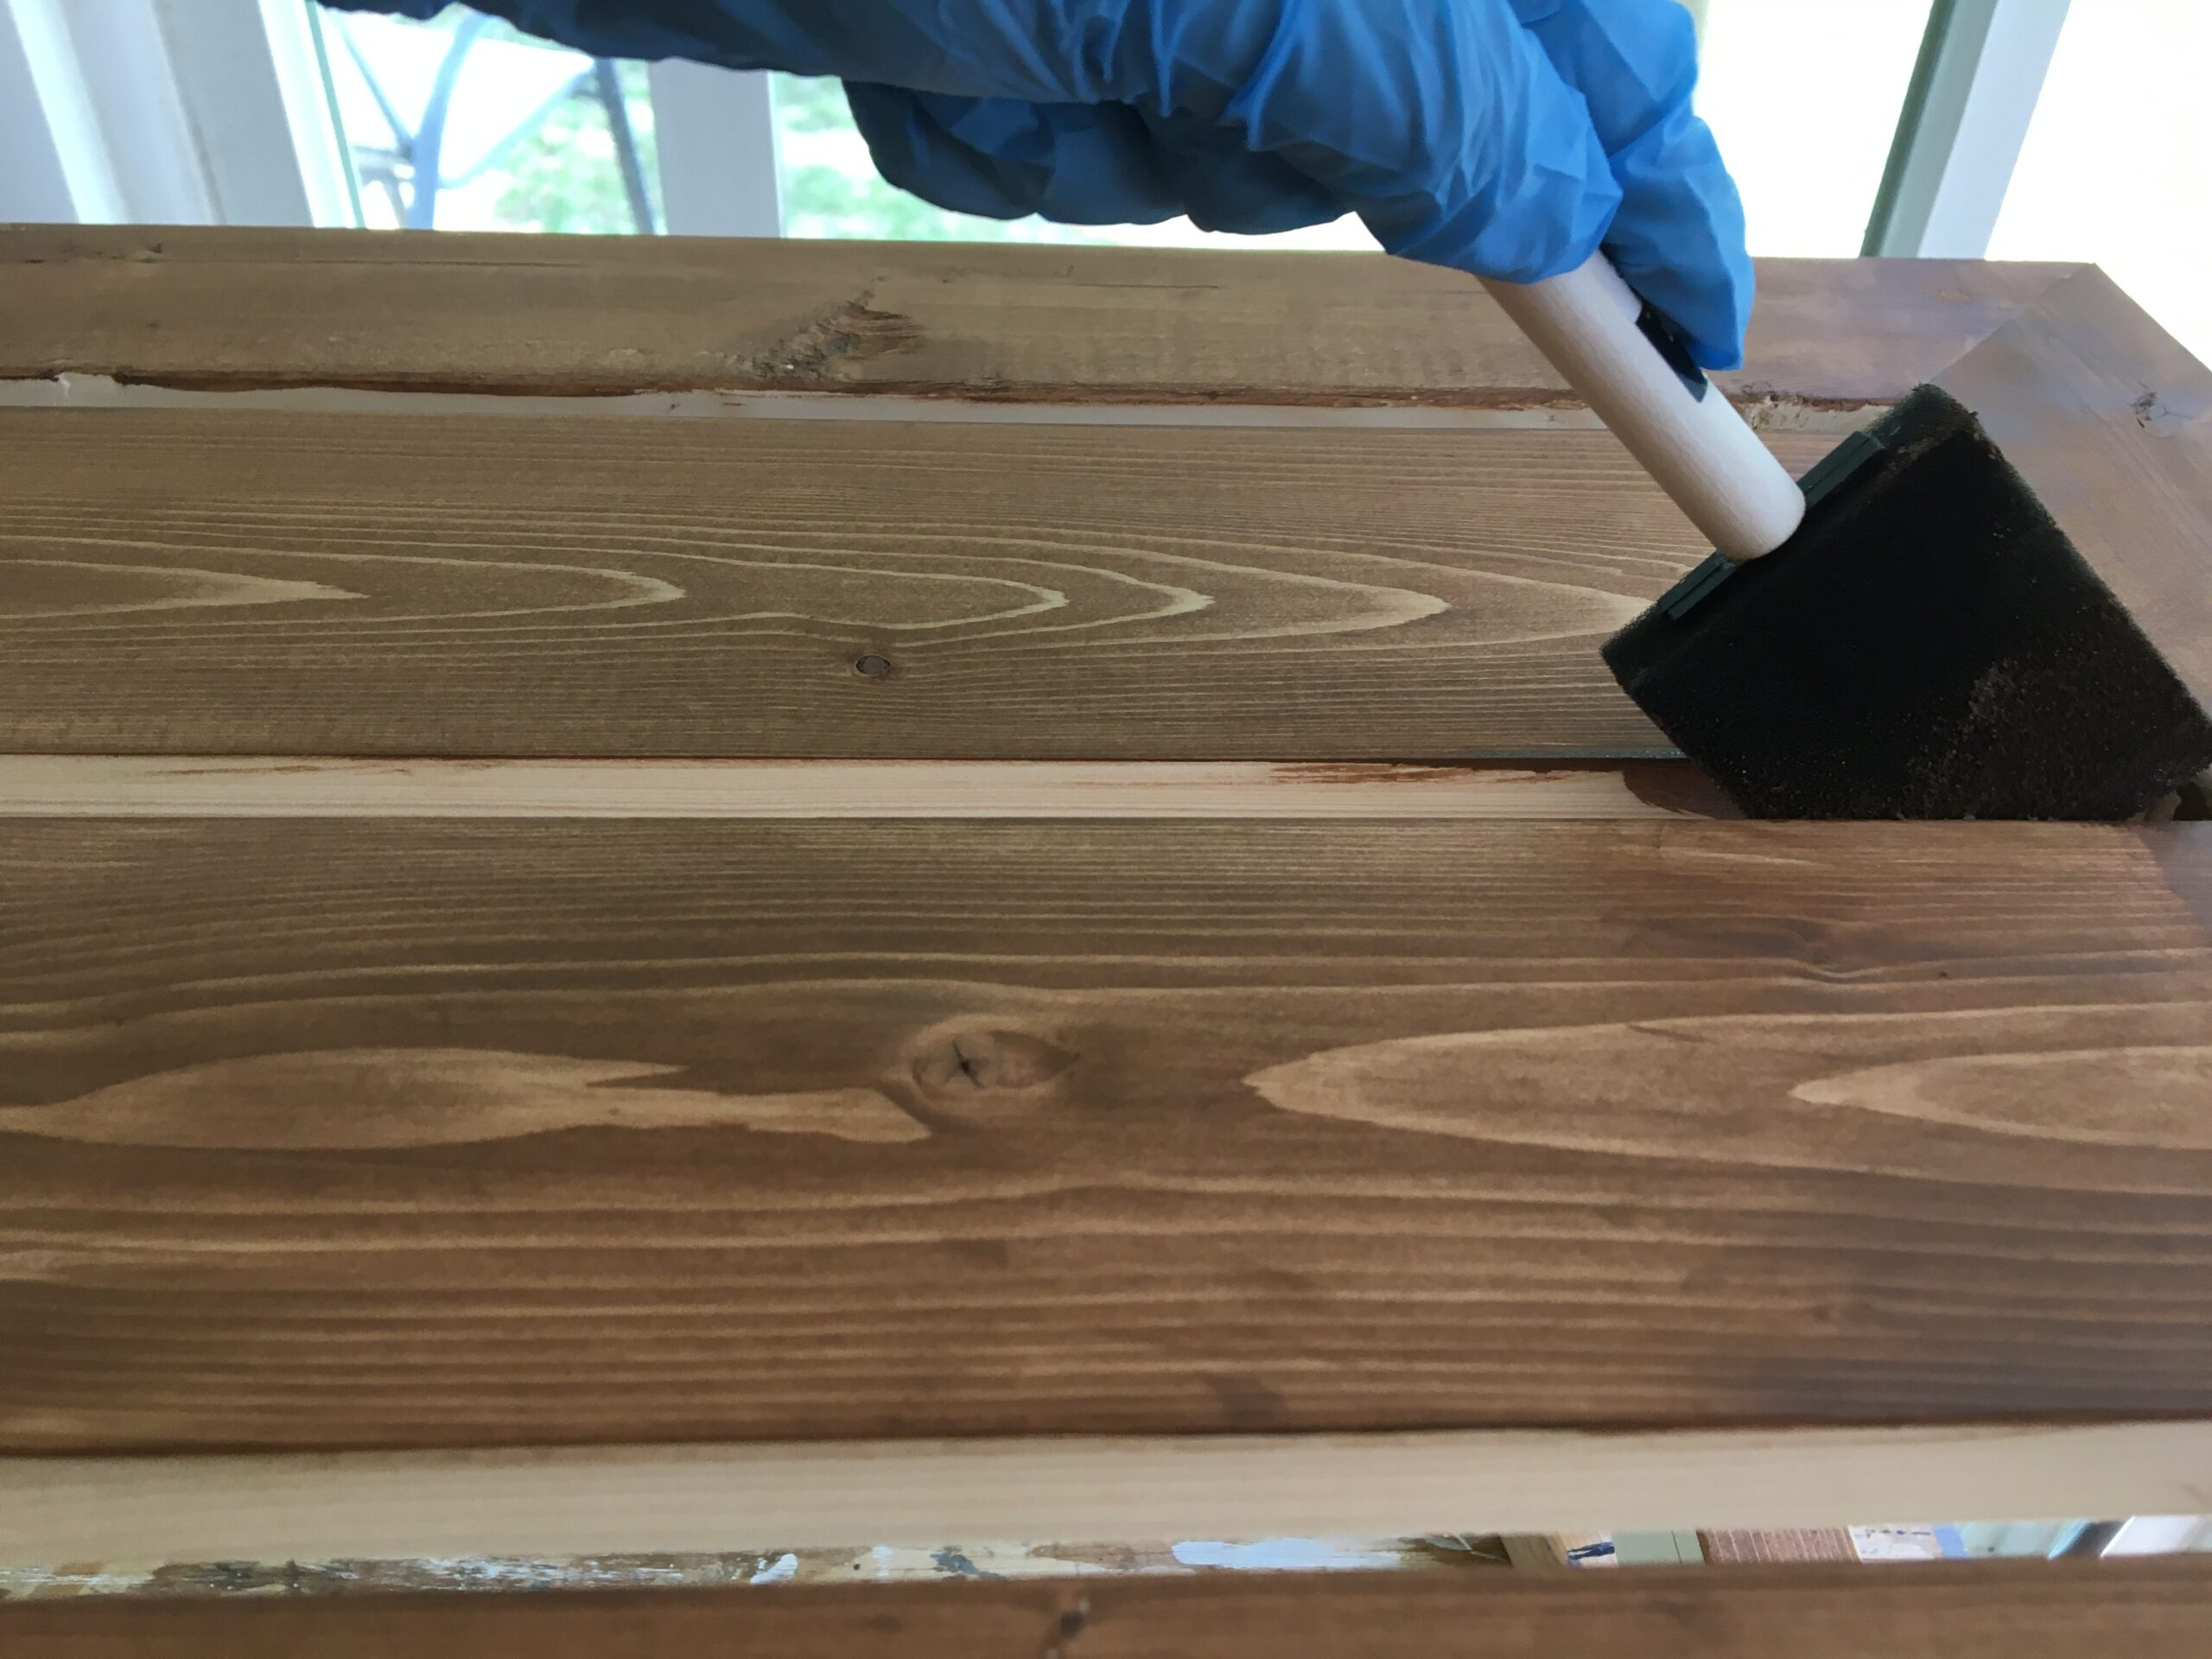 staining between wood slats with a foam brush